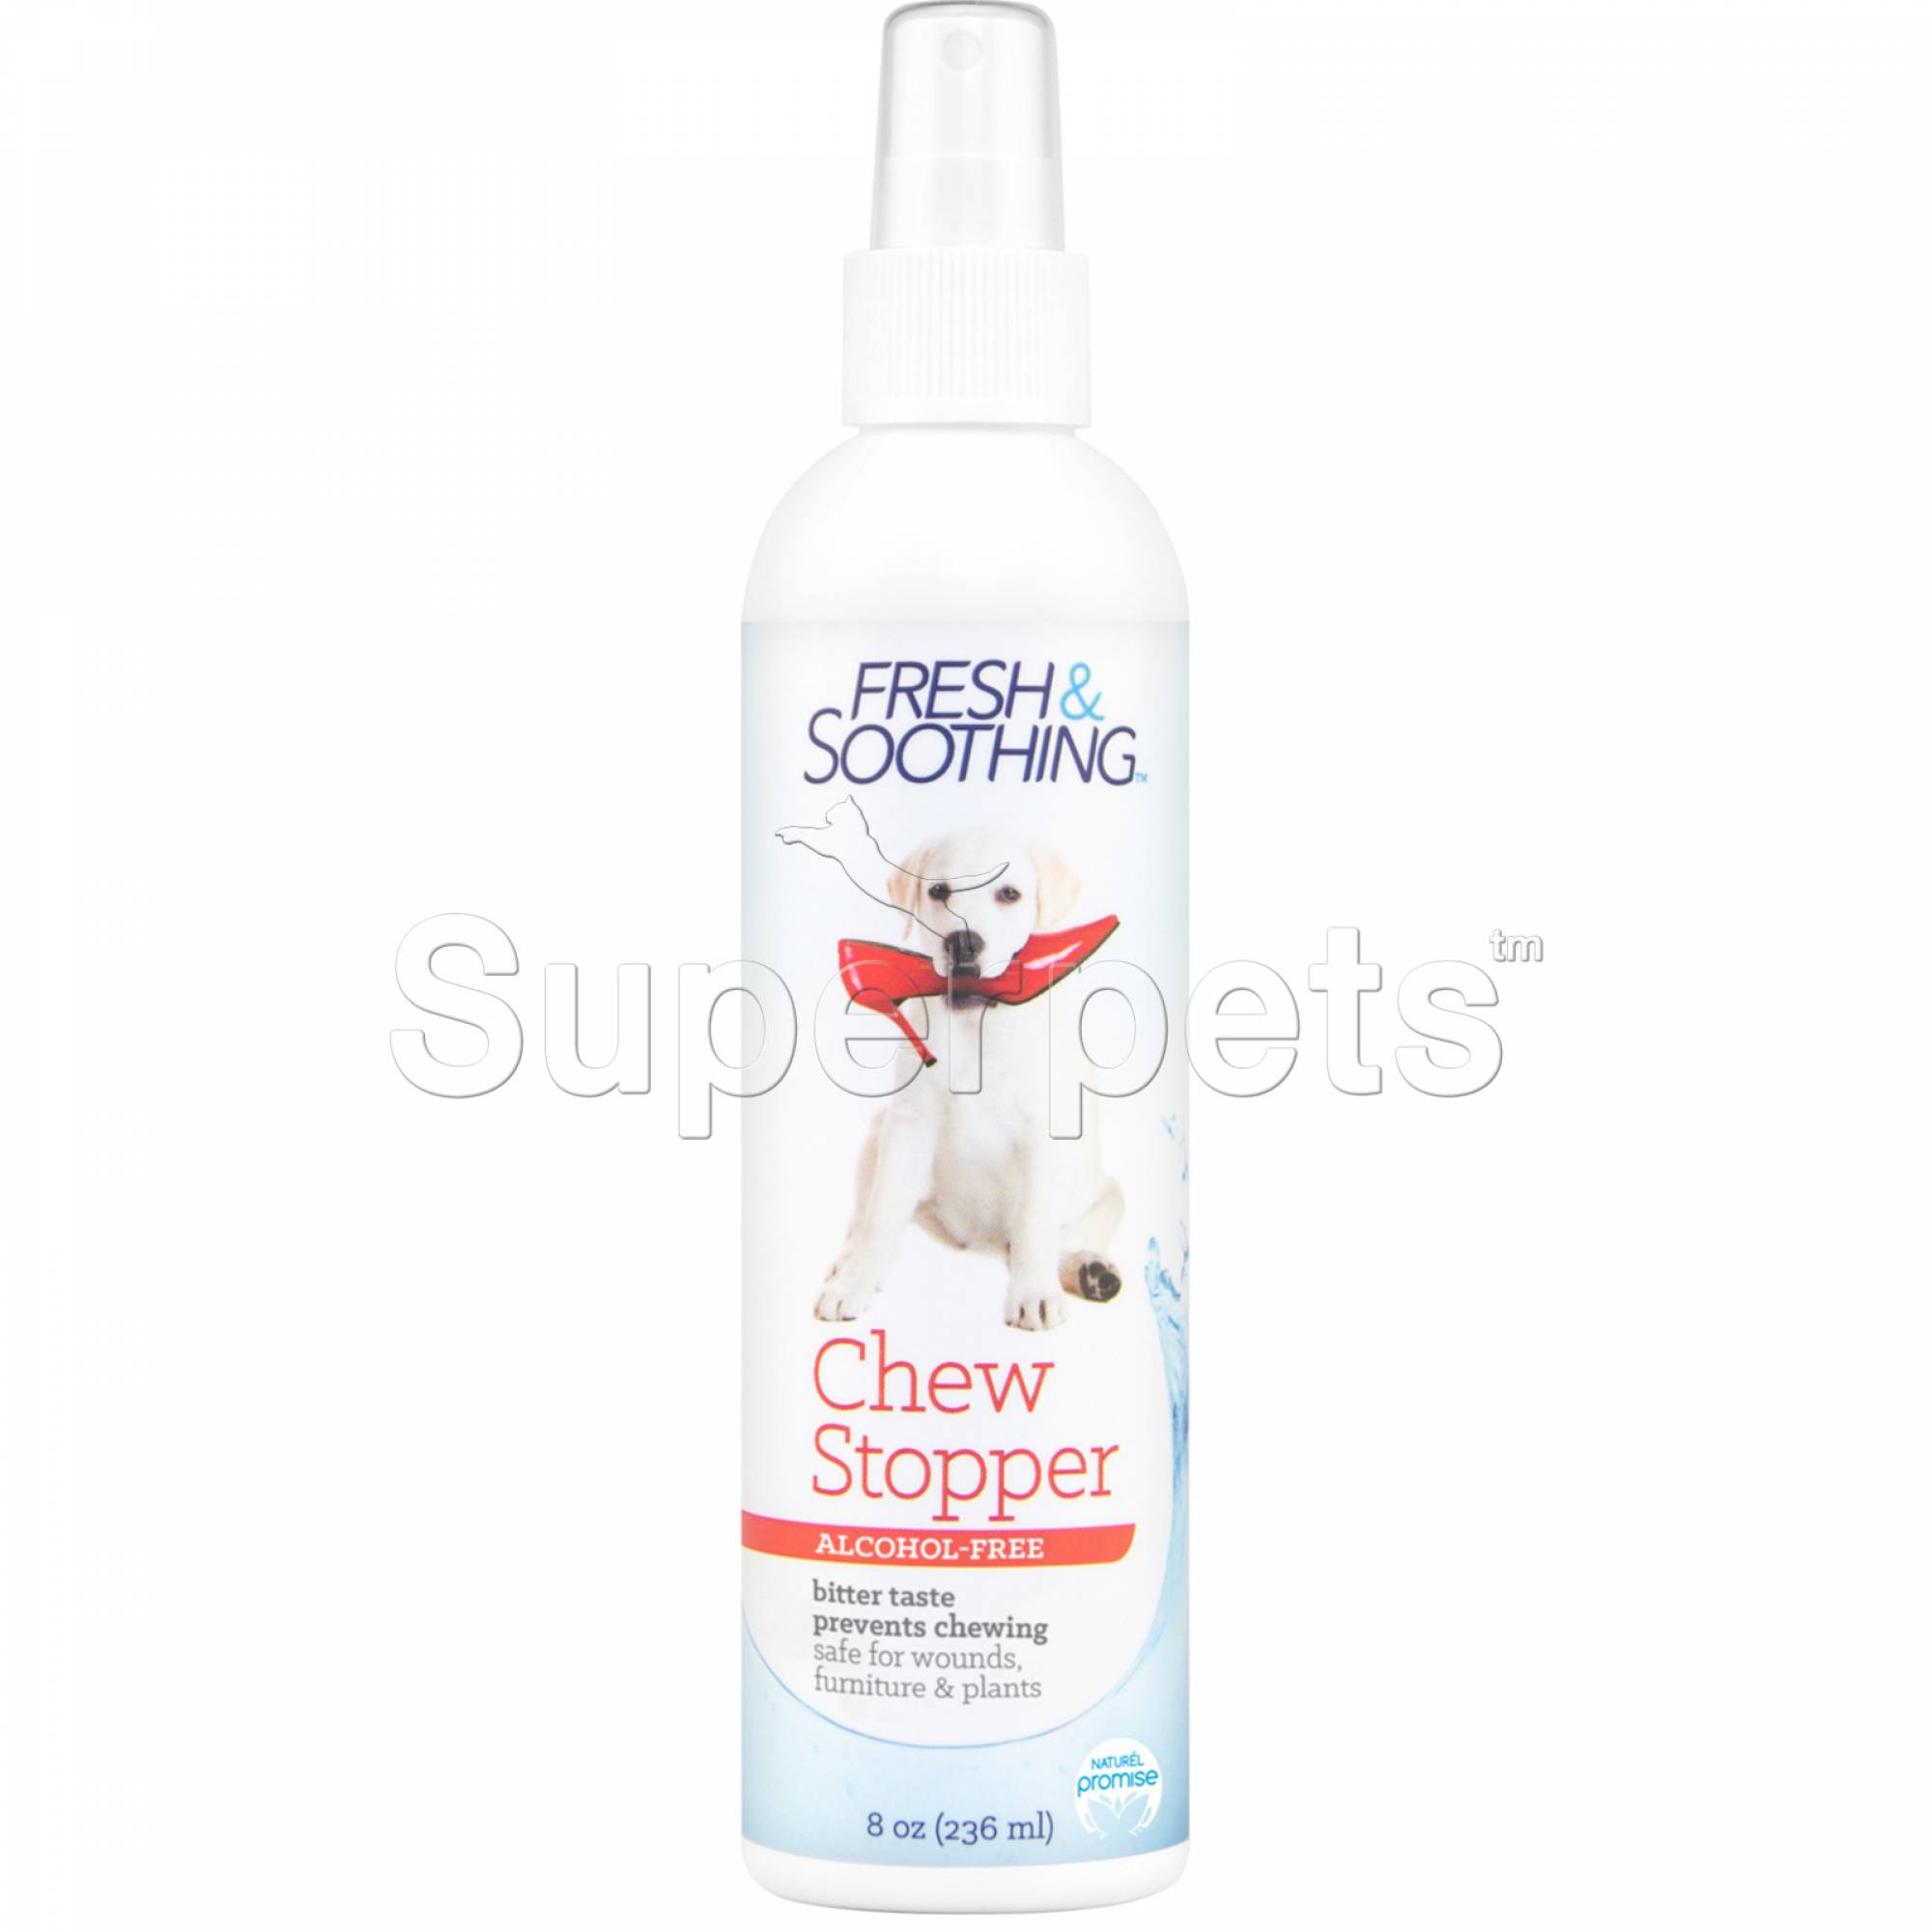 Naturel Promise Fresh & Soothing Chew Stopper 8oz (236ml)